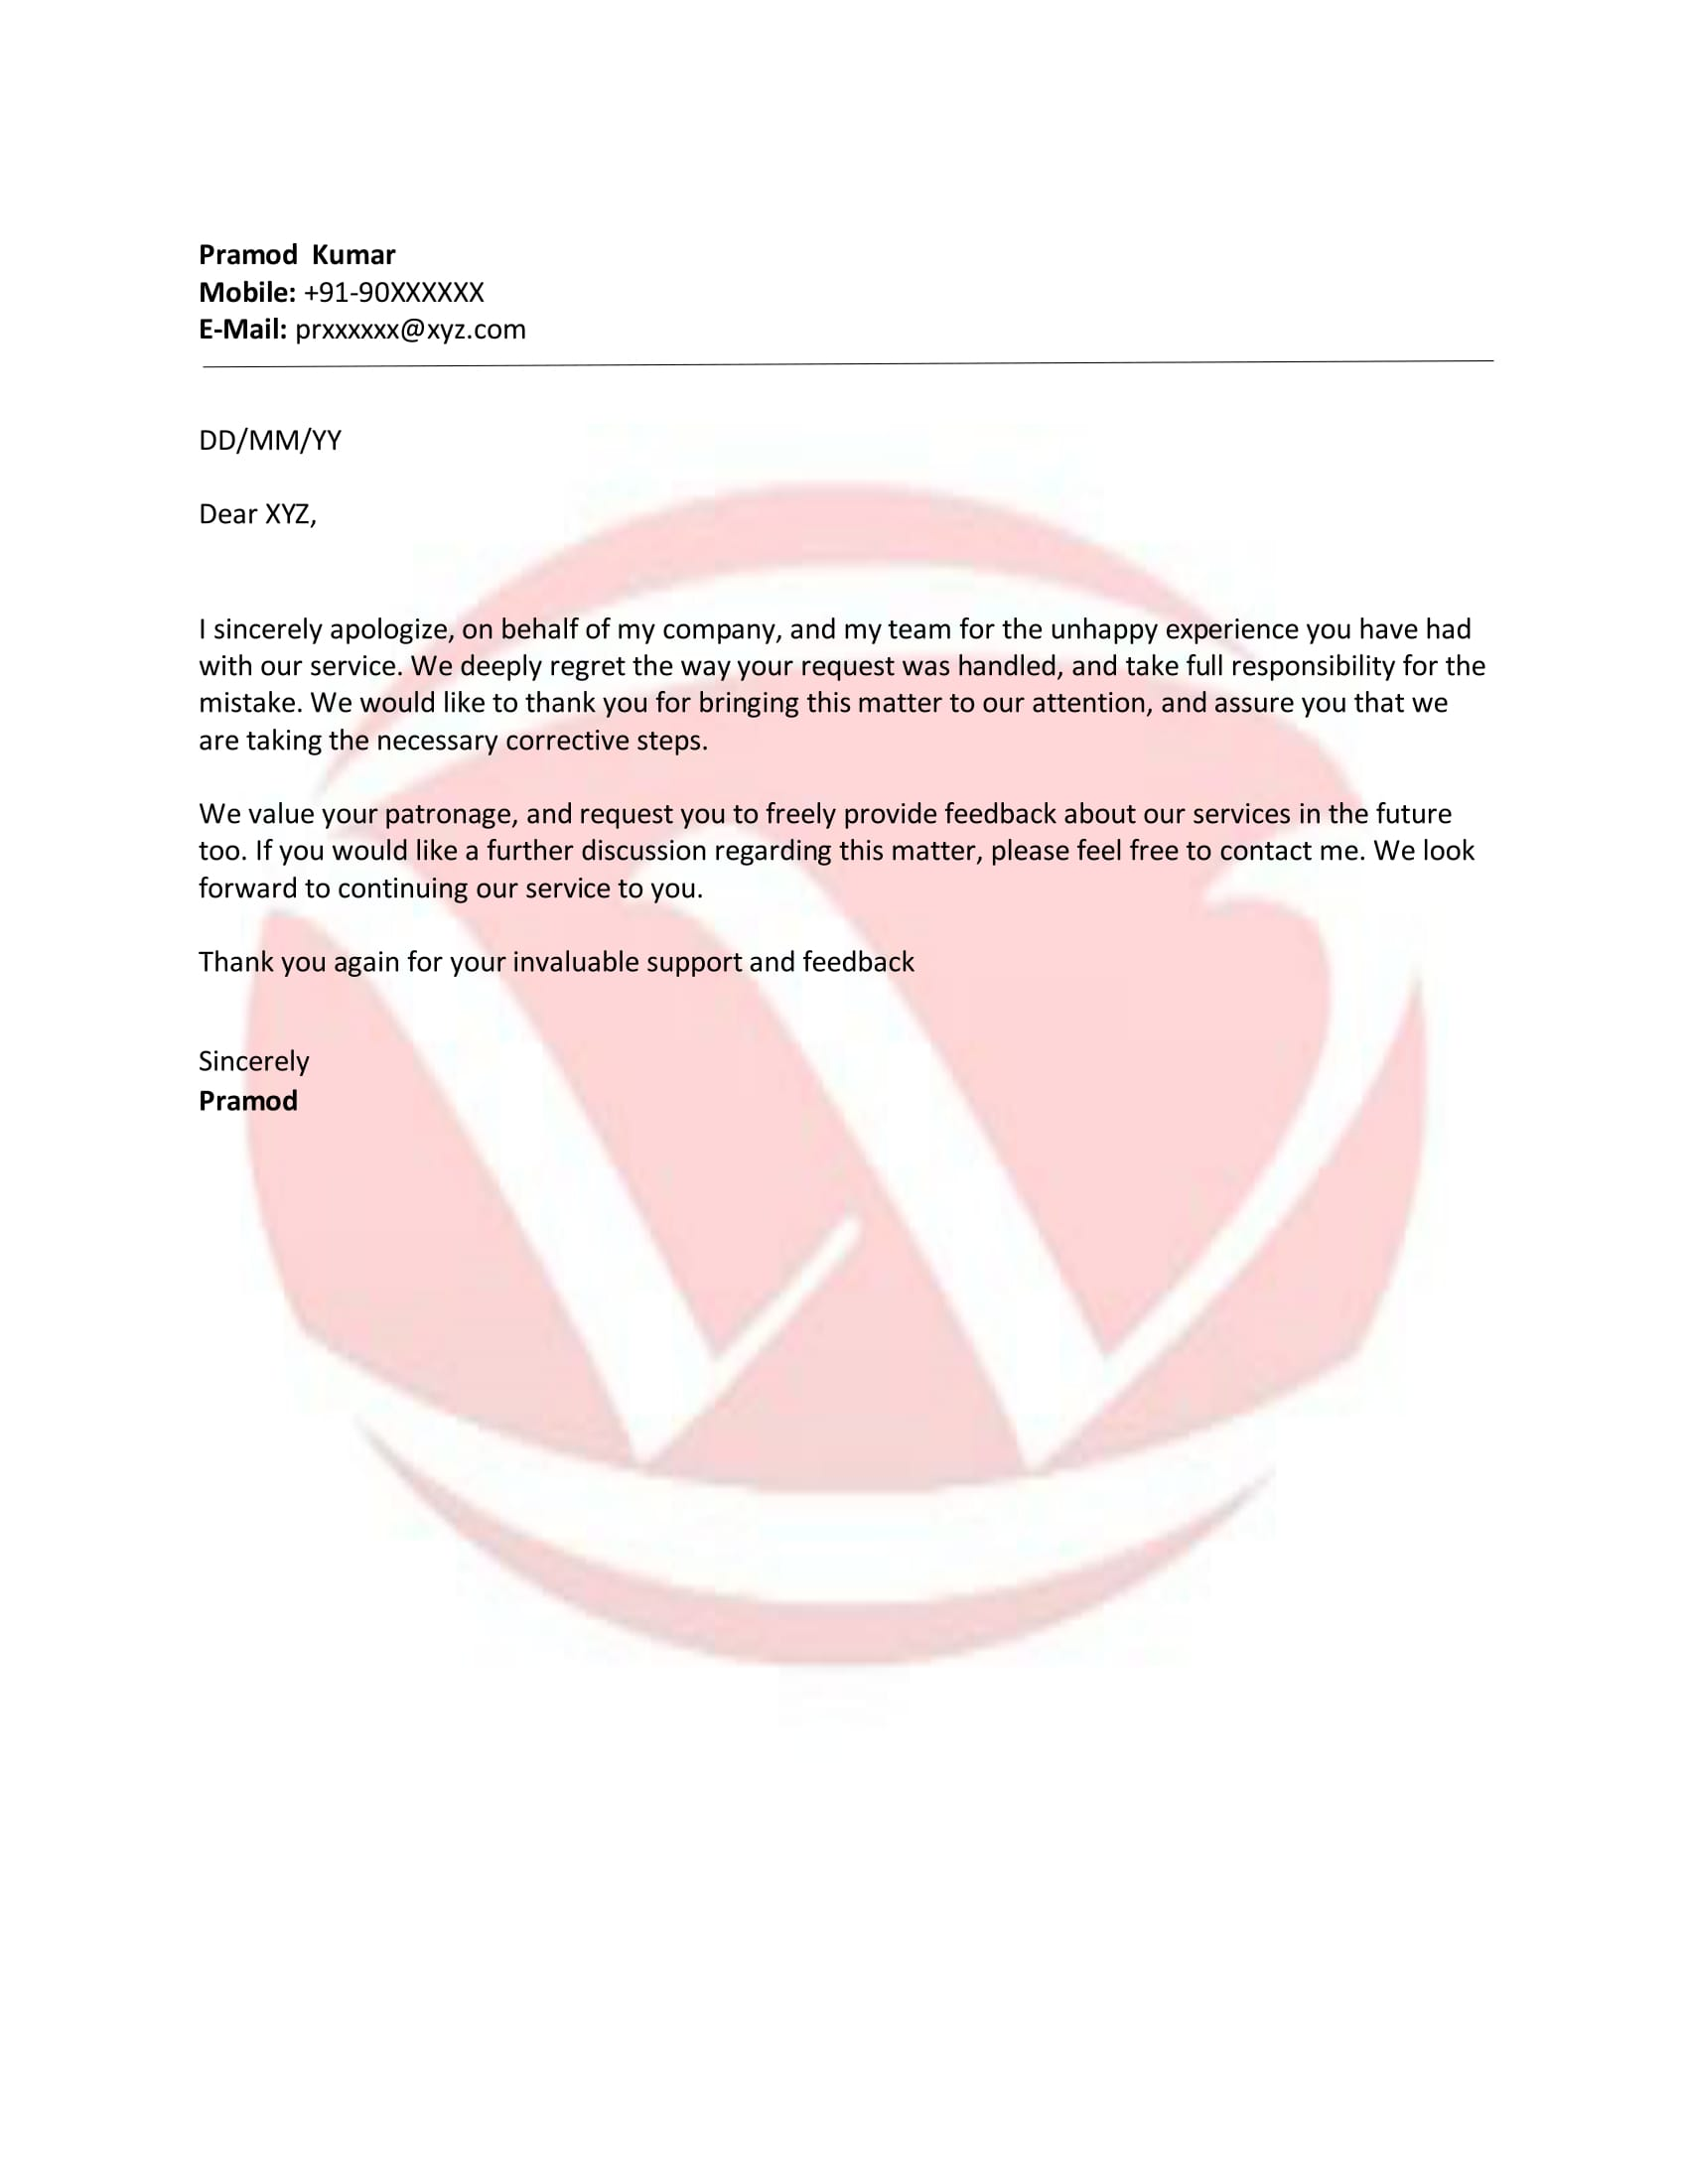 Apology Sample Letter Professional Apology Letter Free Sample